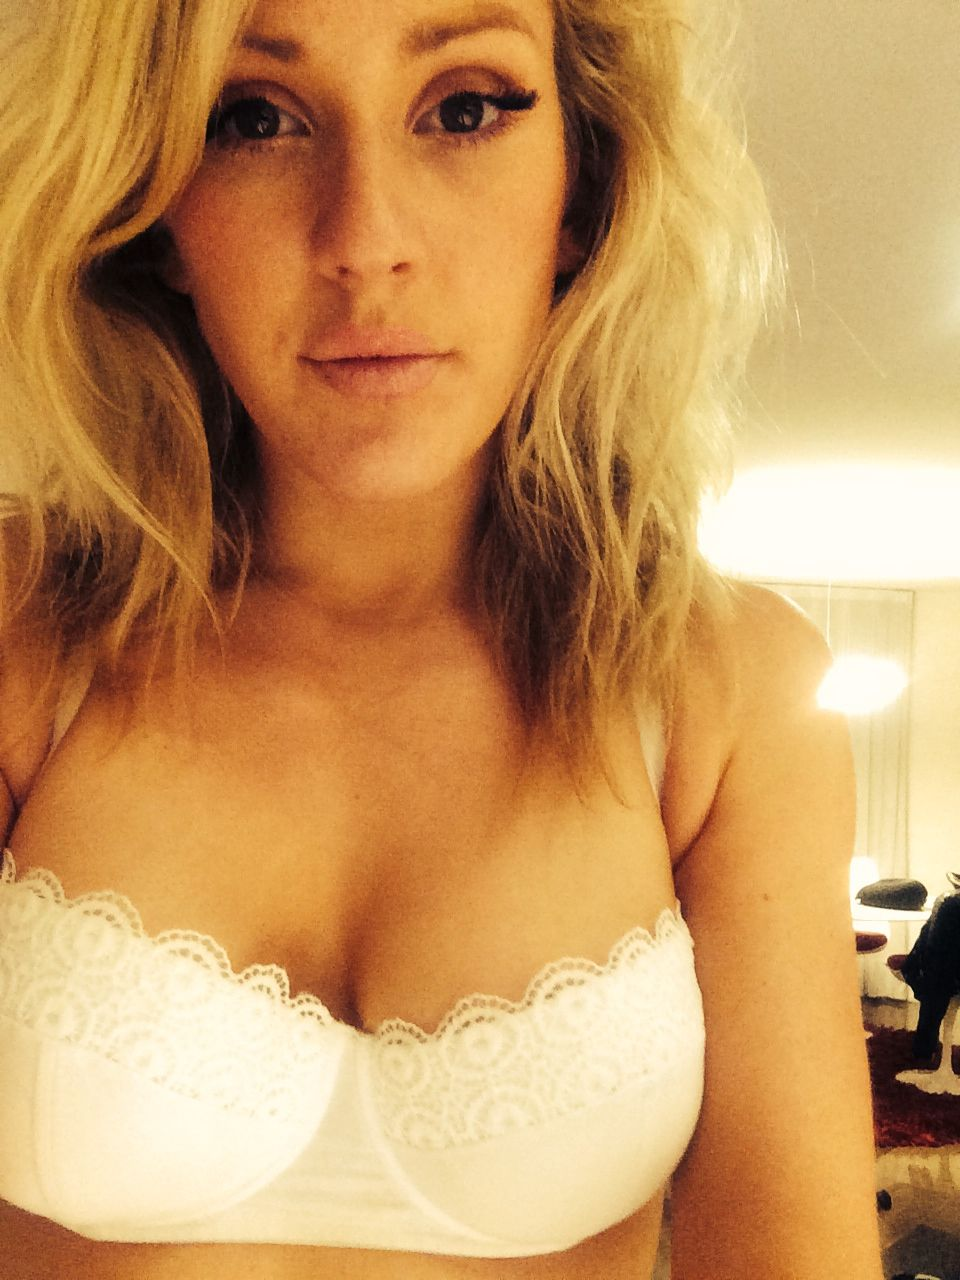 Ellie Goulding Nude Leaked The Fappening 0017